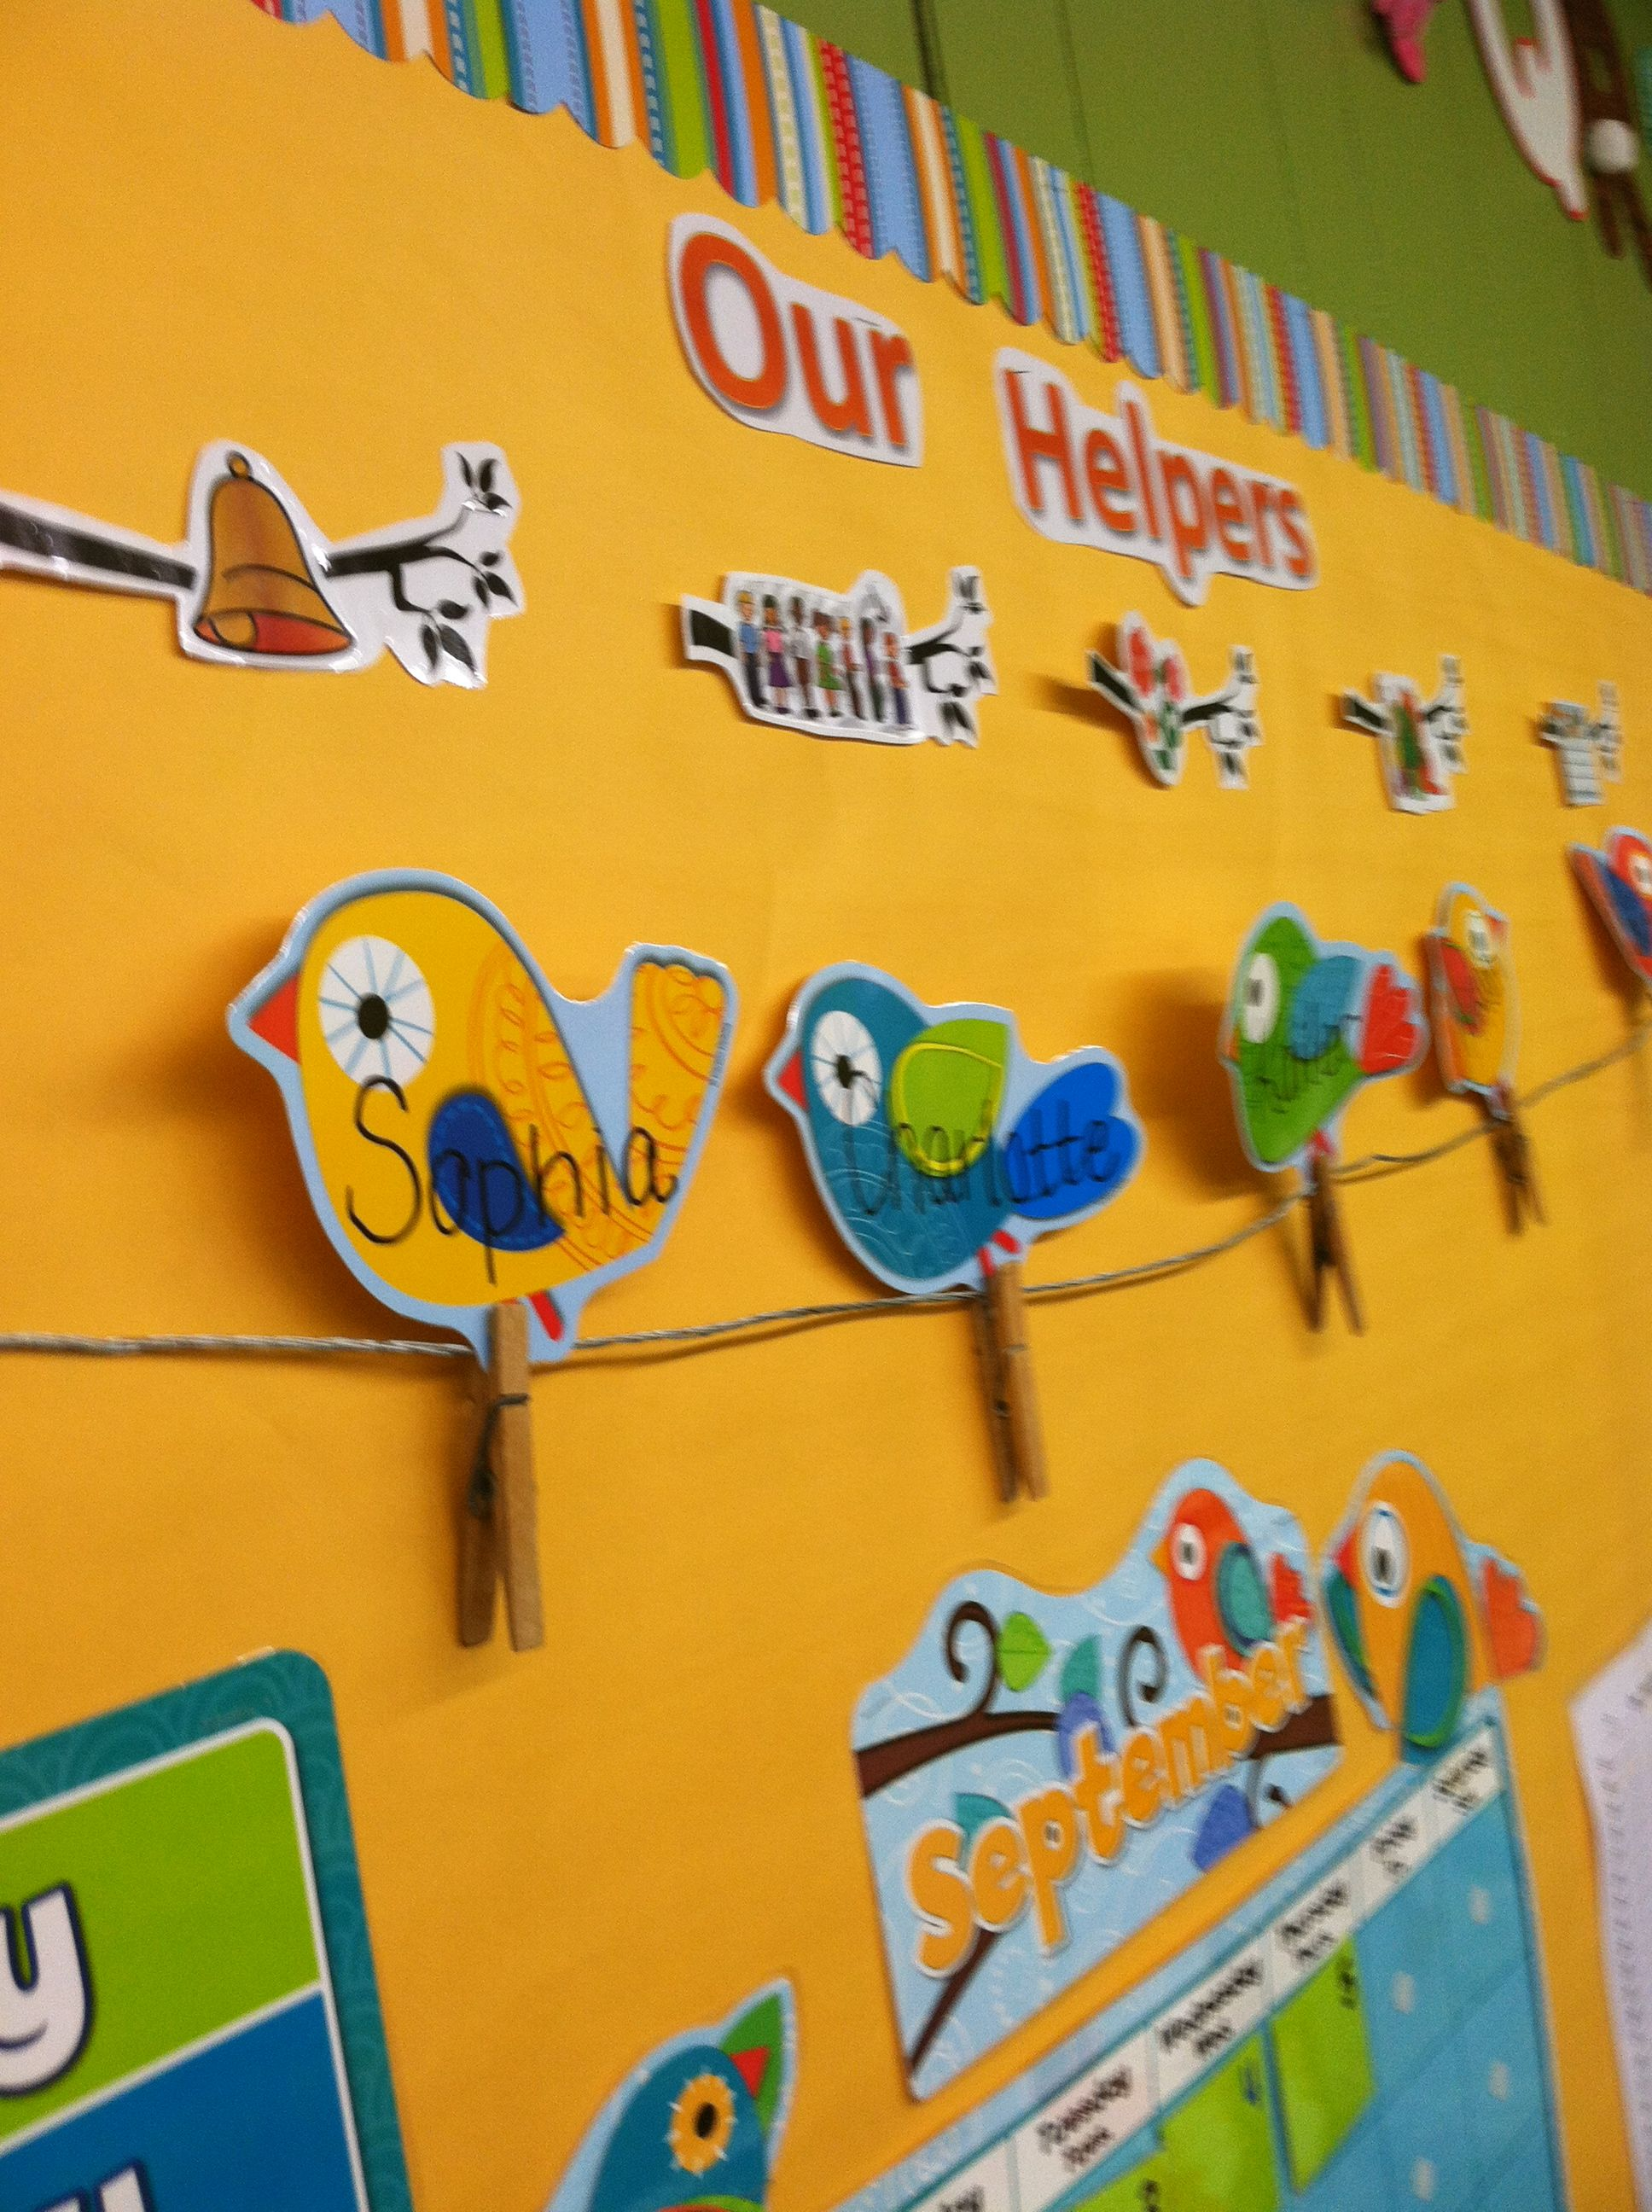 Birds on  wire helper chart cool classroom theme ideas for preschool also best images pinterest decor rh